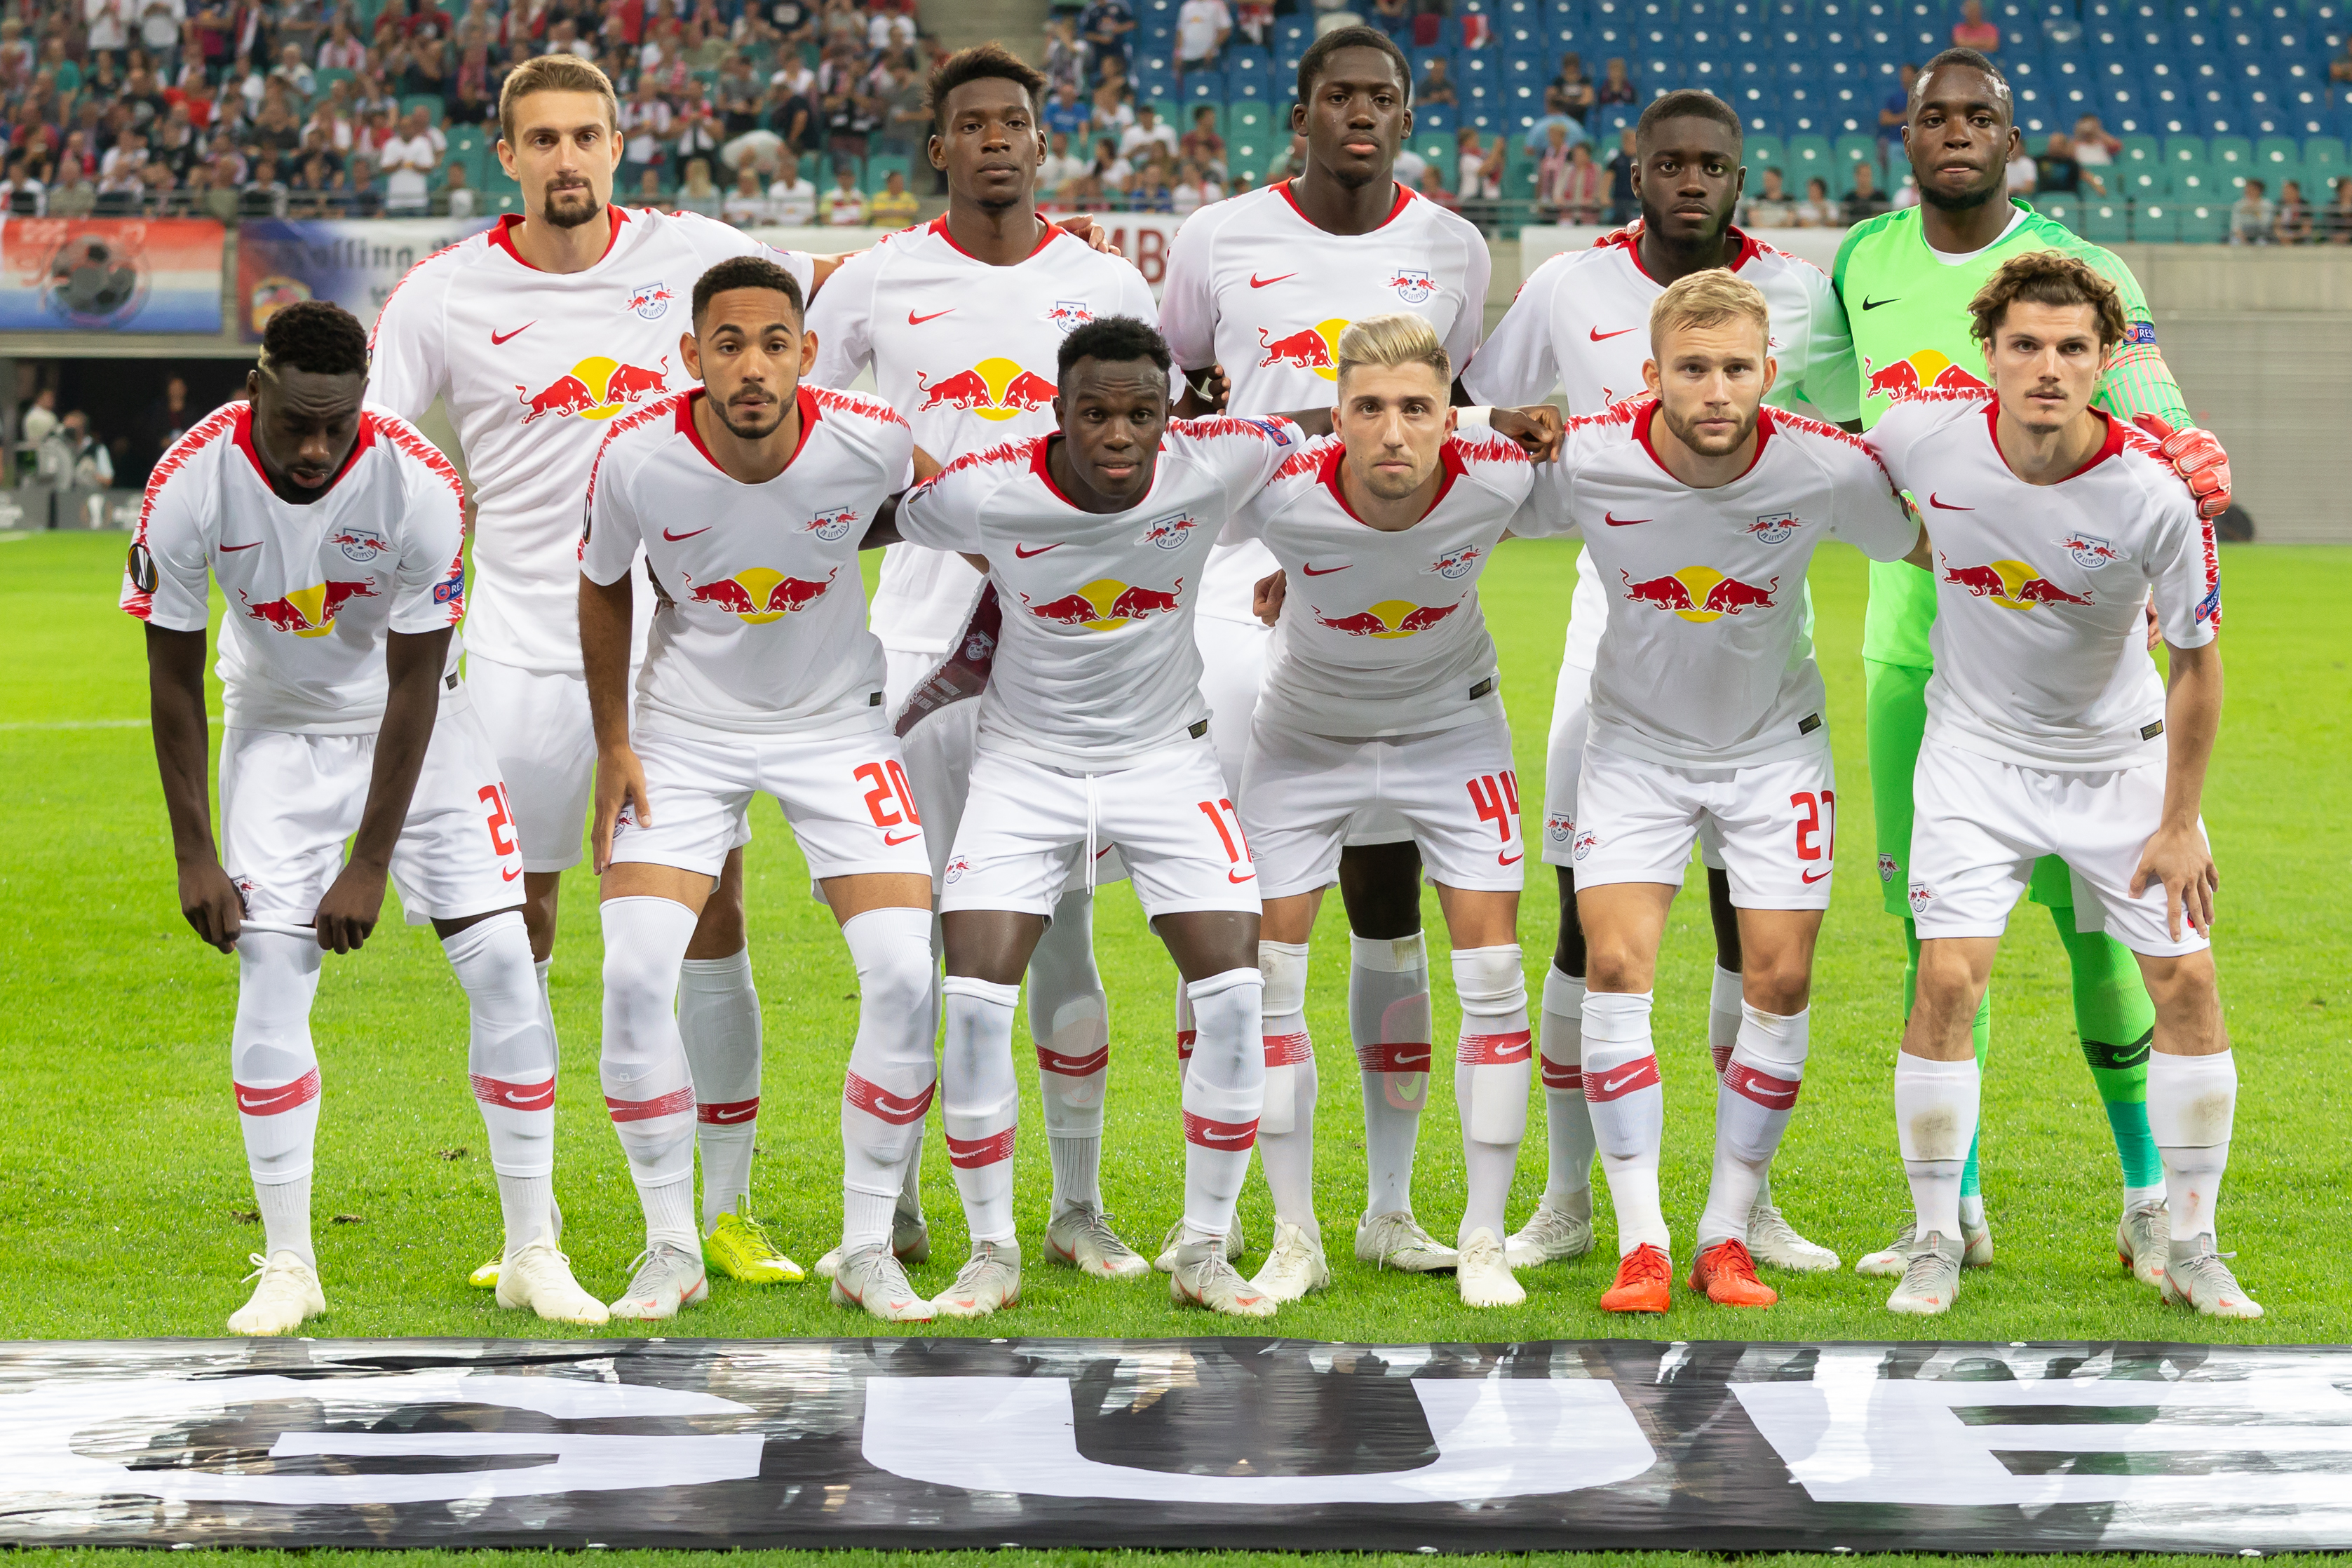 File 20180920 Fussball Uefa Europa League Rb Leipzig Fc Salzburg By Stepro Stp 7968 Jpg Wikimedia Commons